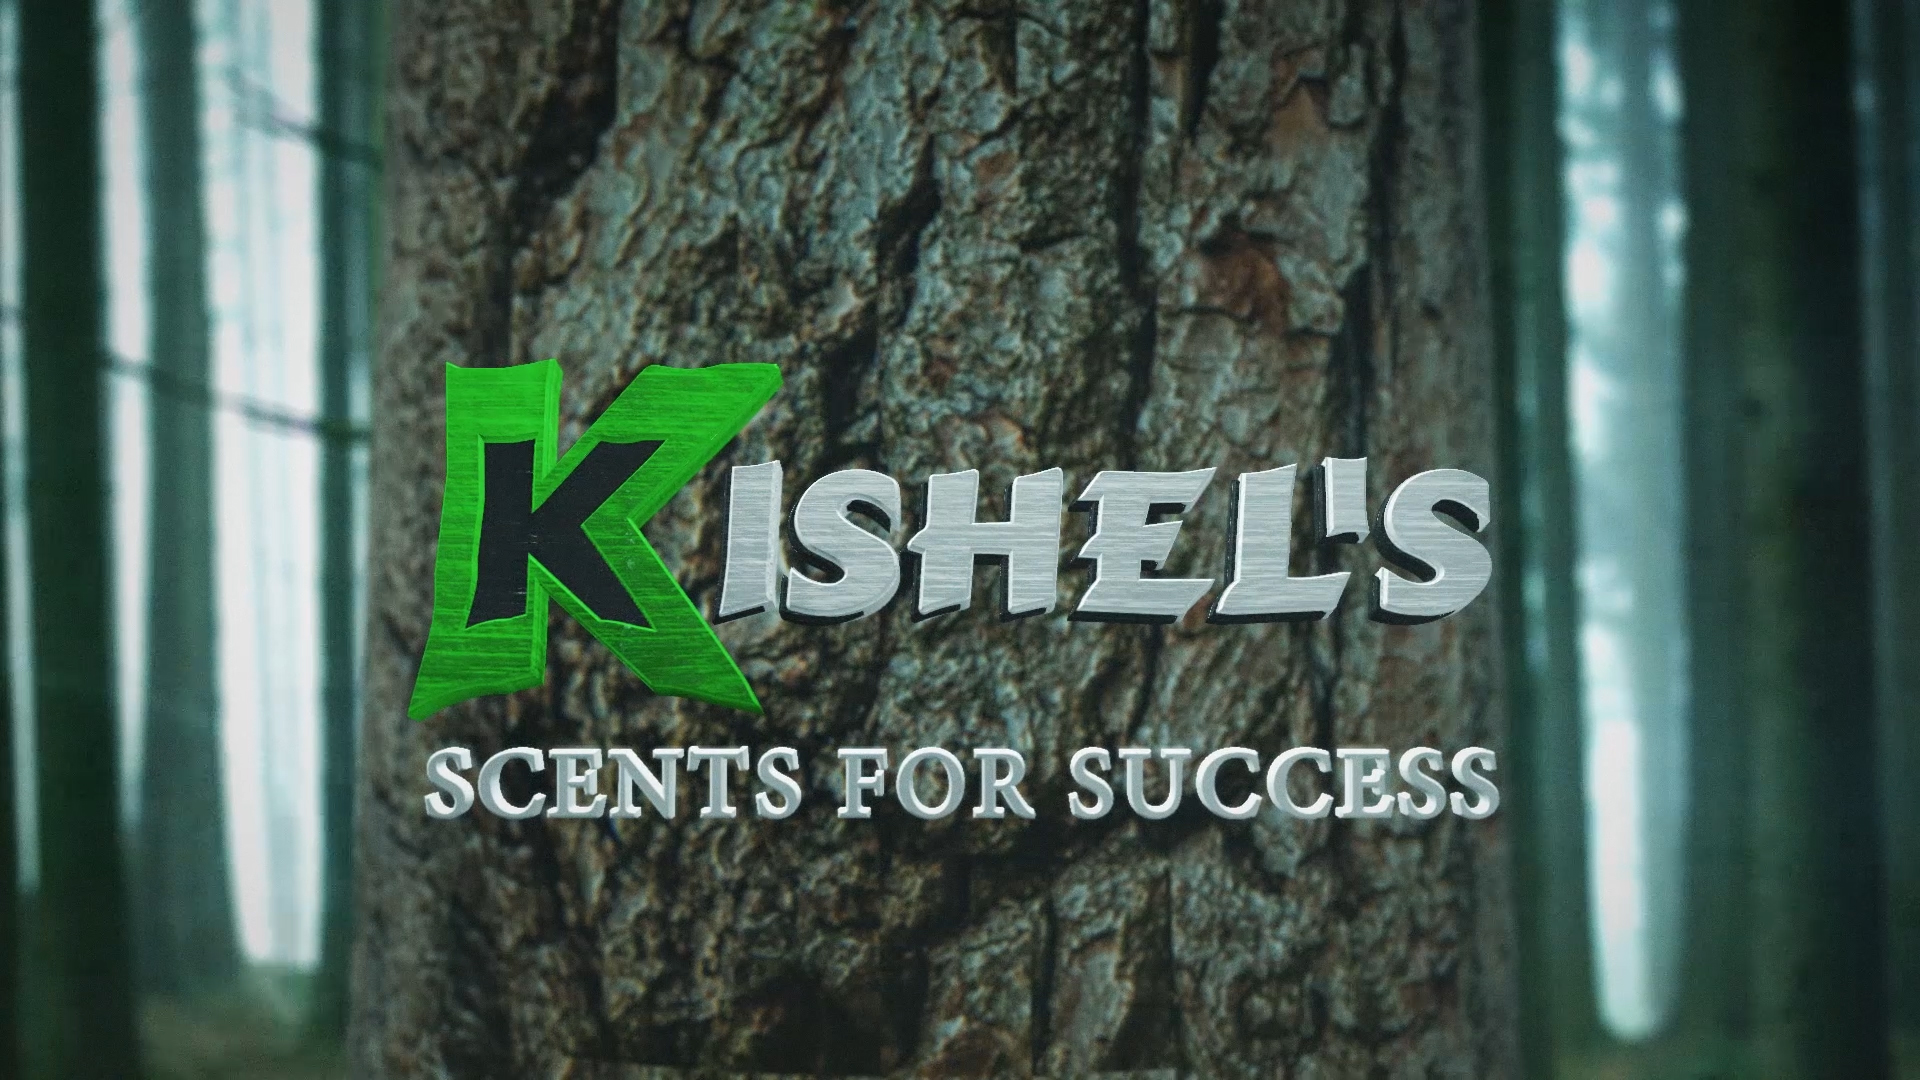 Kishel scents scents for success sciox Image collections